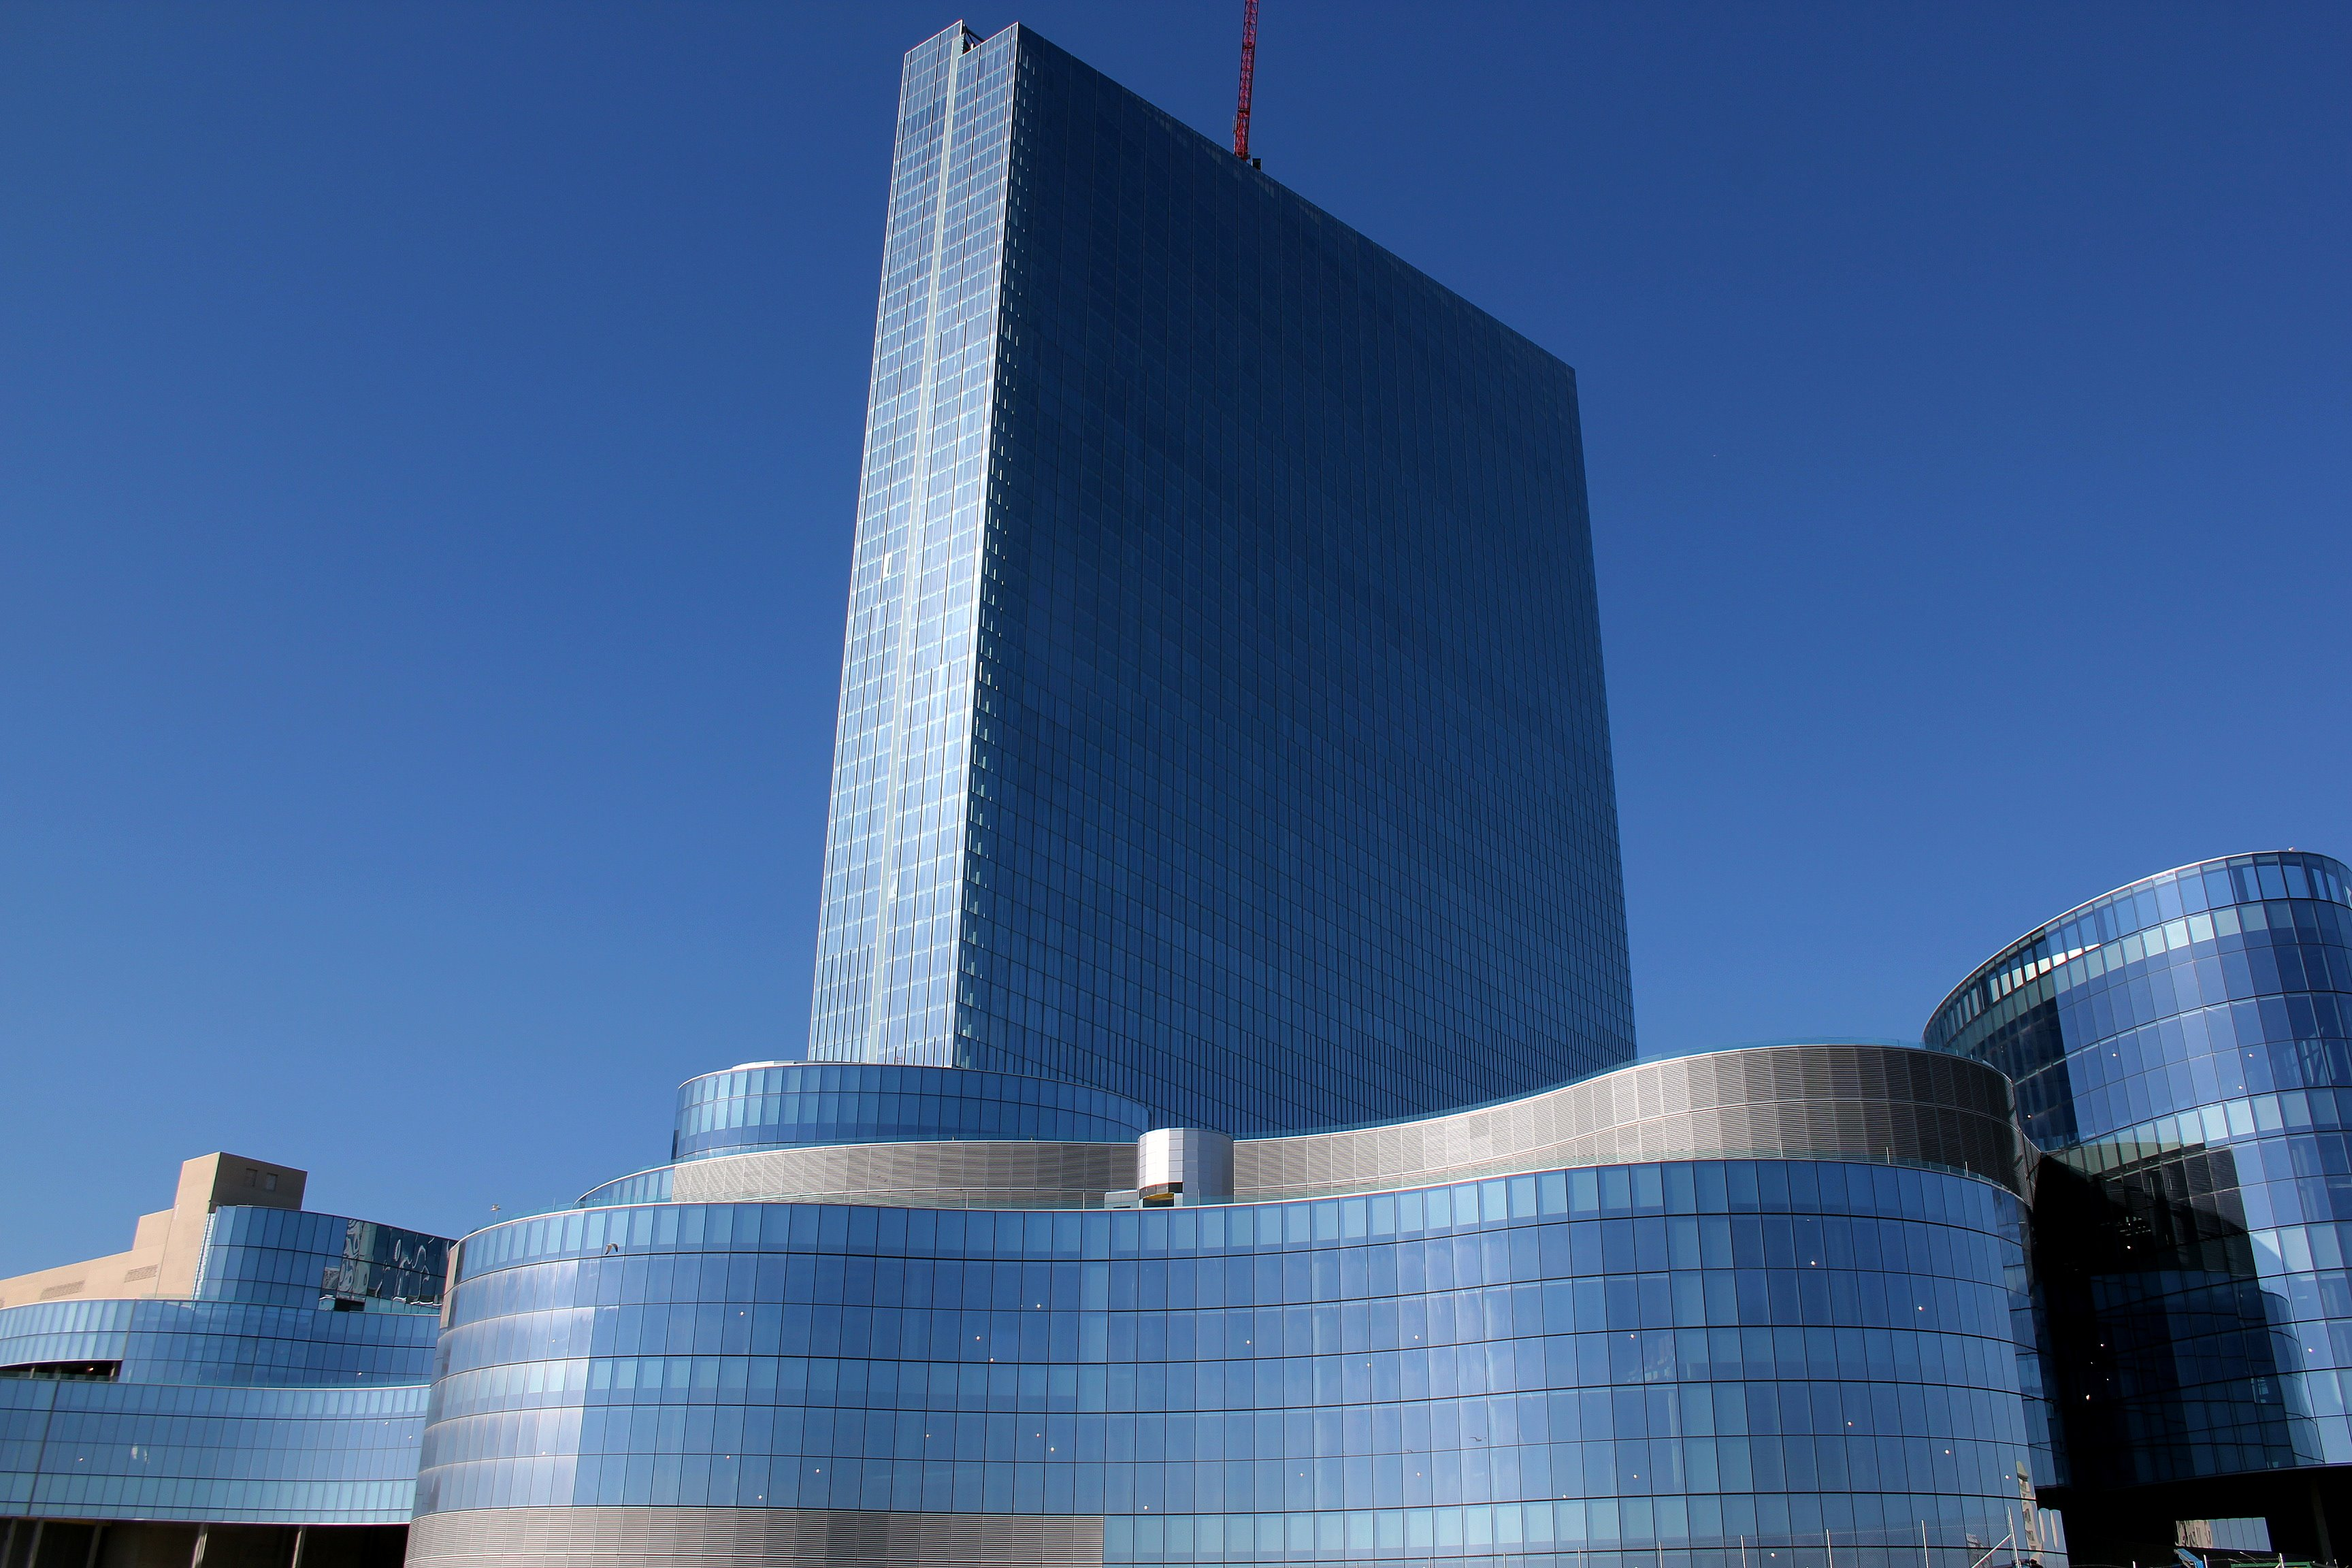 Atlantic City casino hotel guide with reviews and photos.